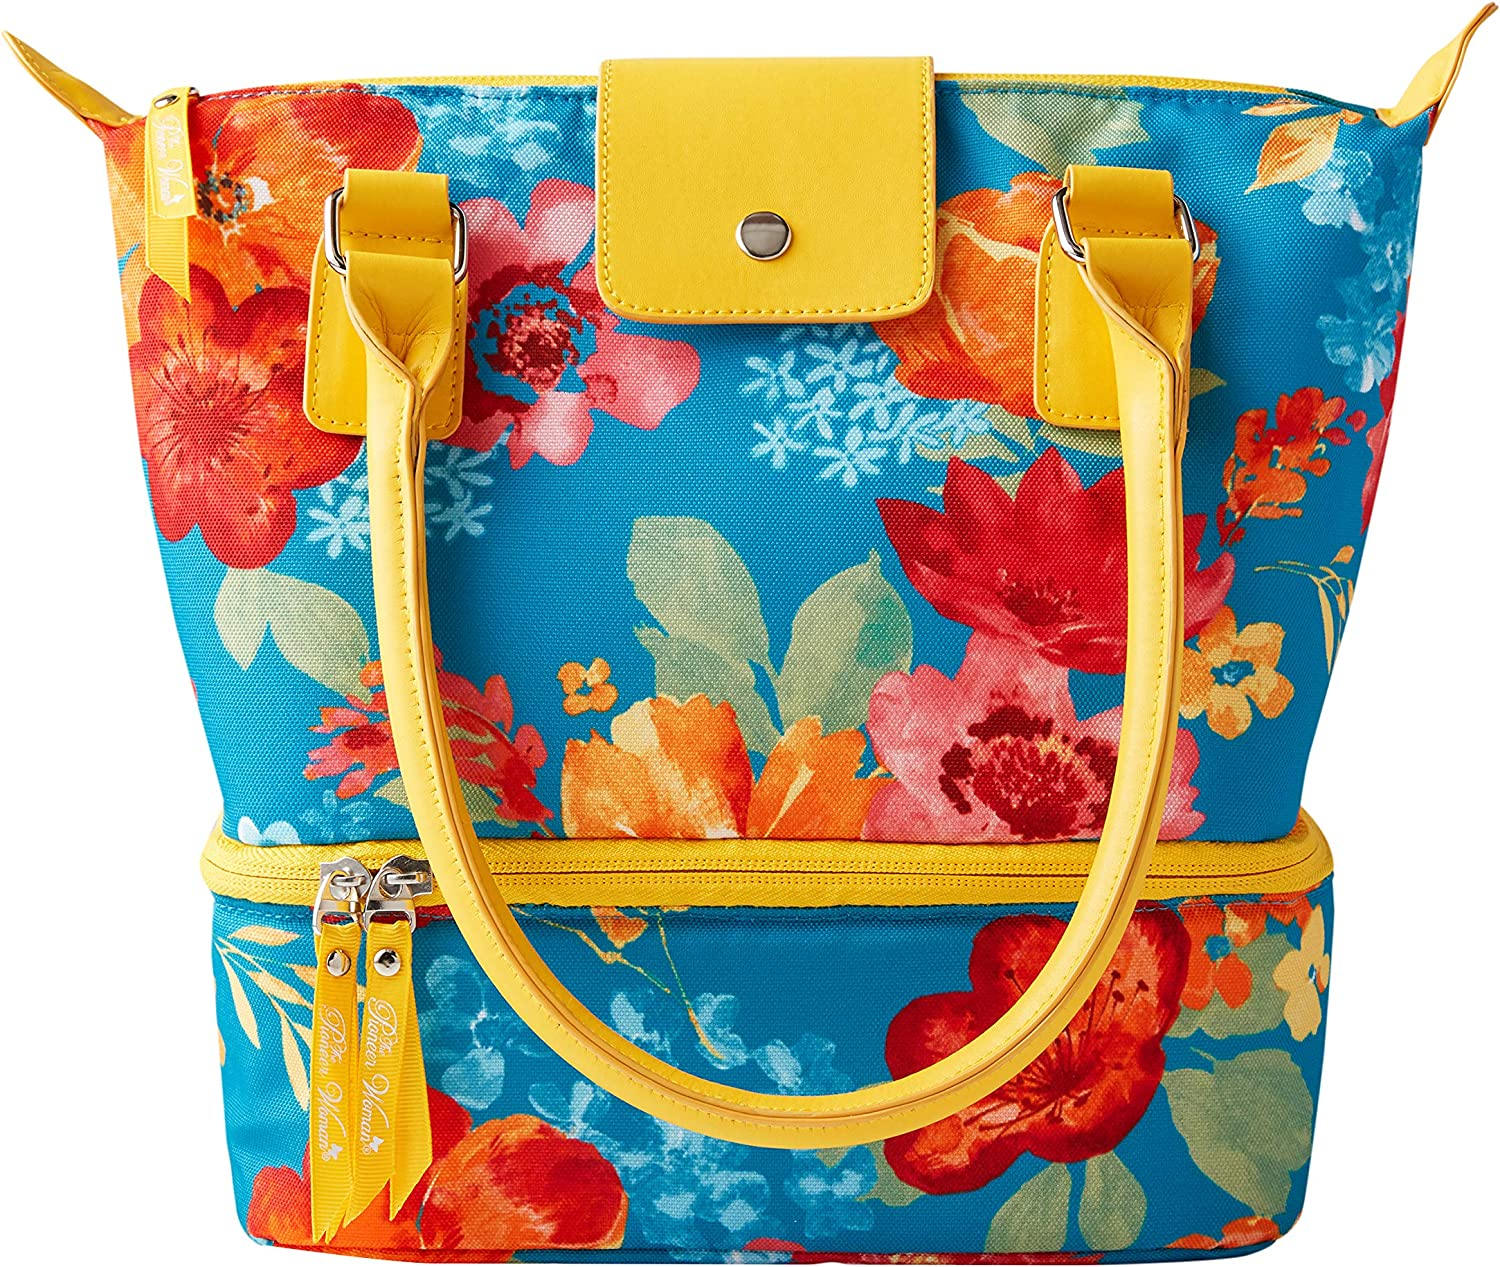 The Pioneer Woman Insulated 3 Piece Lunch Kit (Classic Charm) Wildflower Whimsy